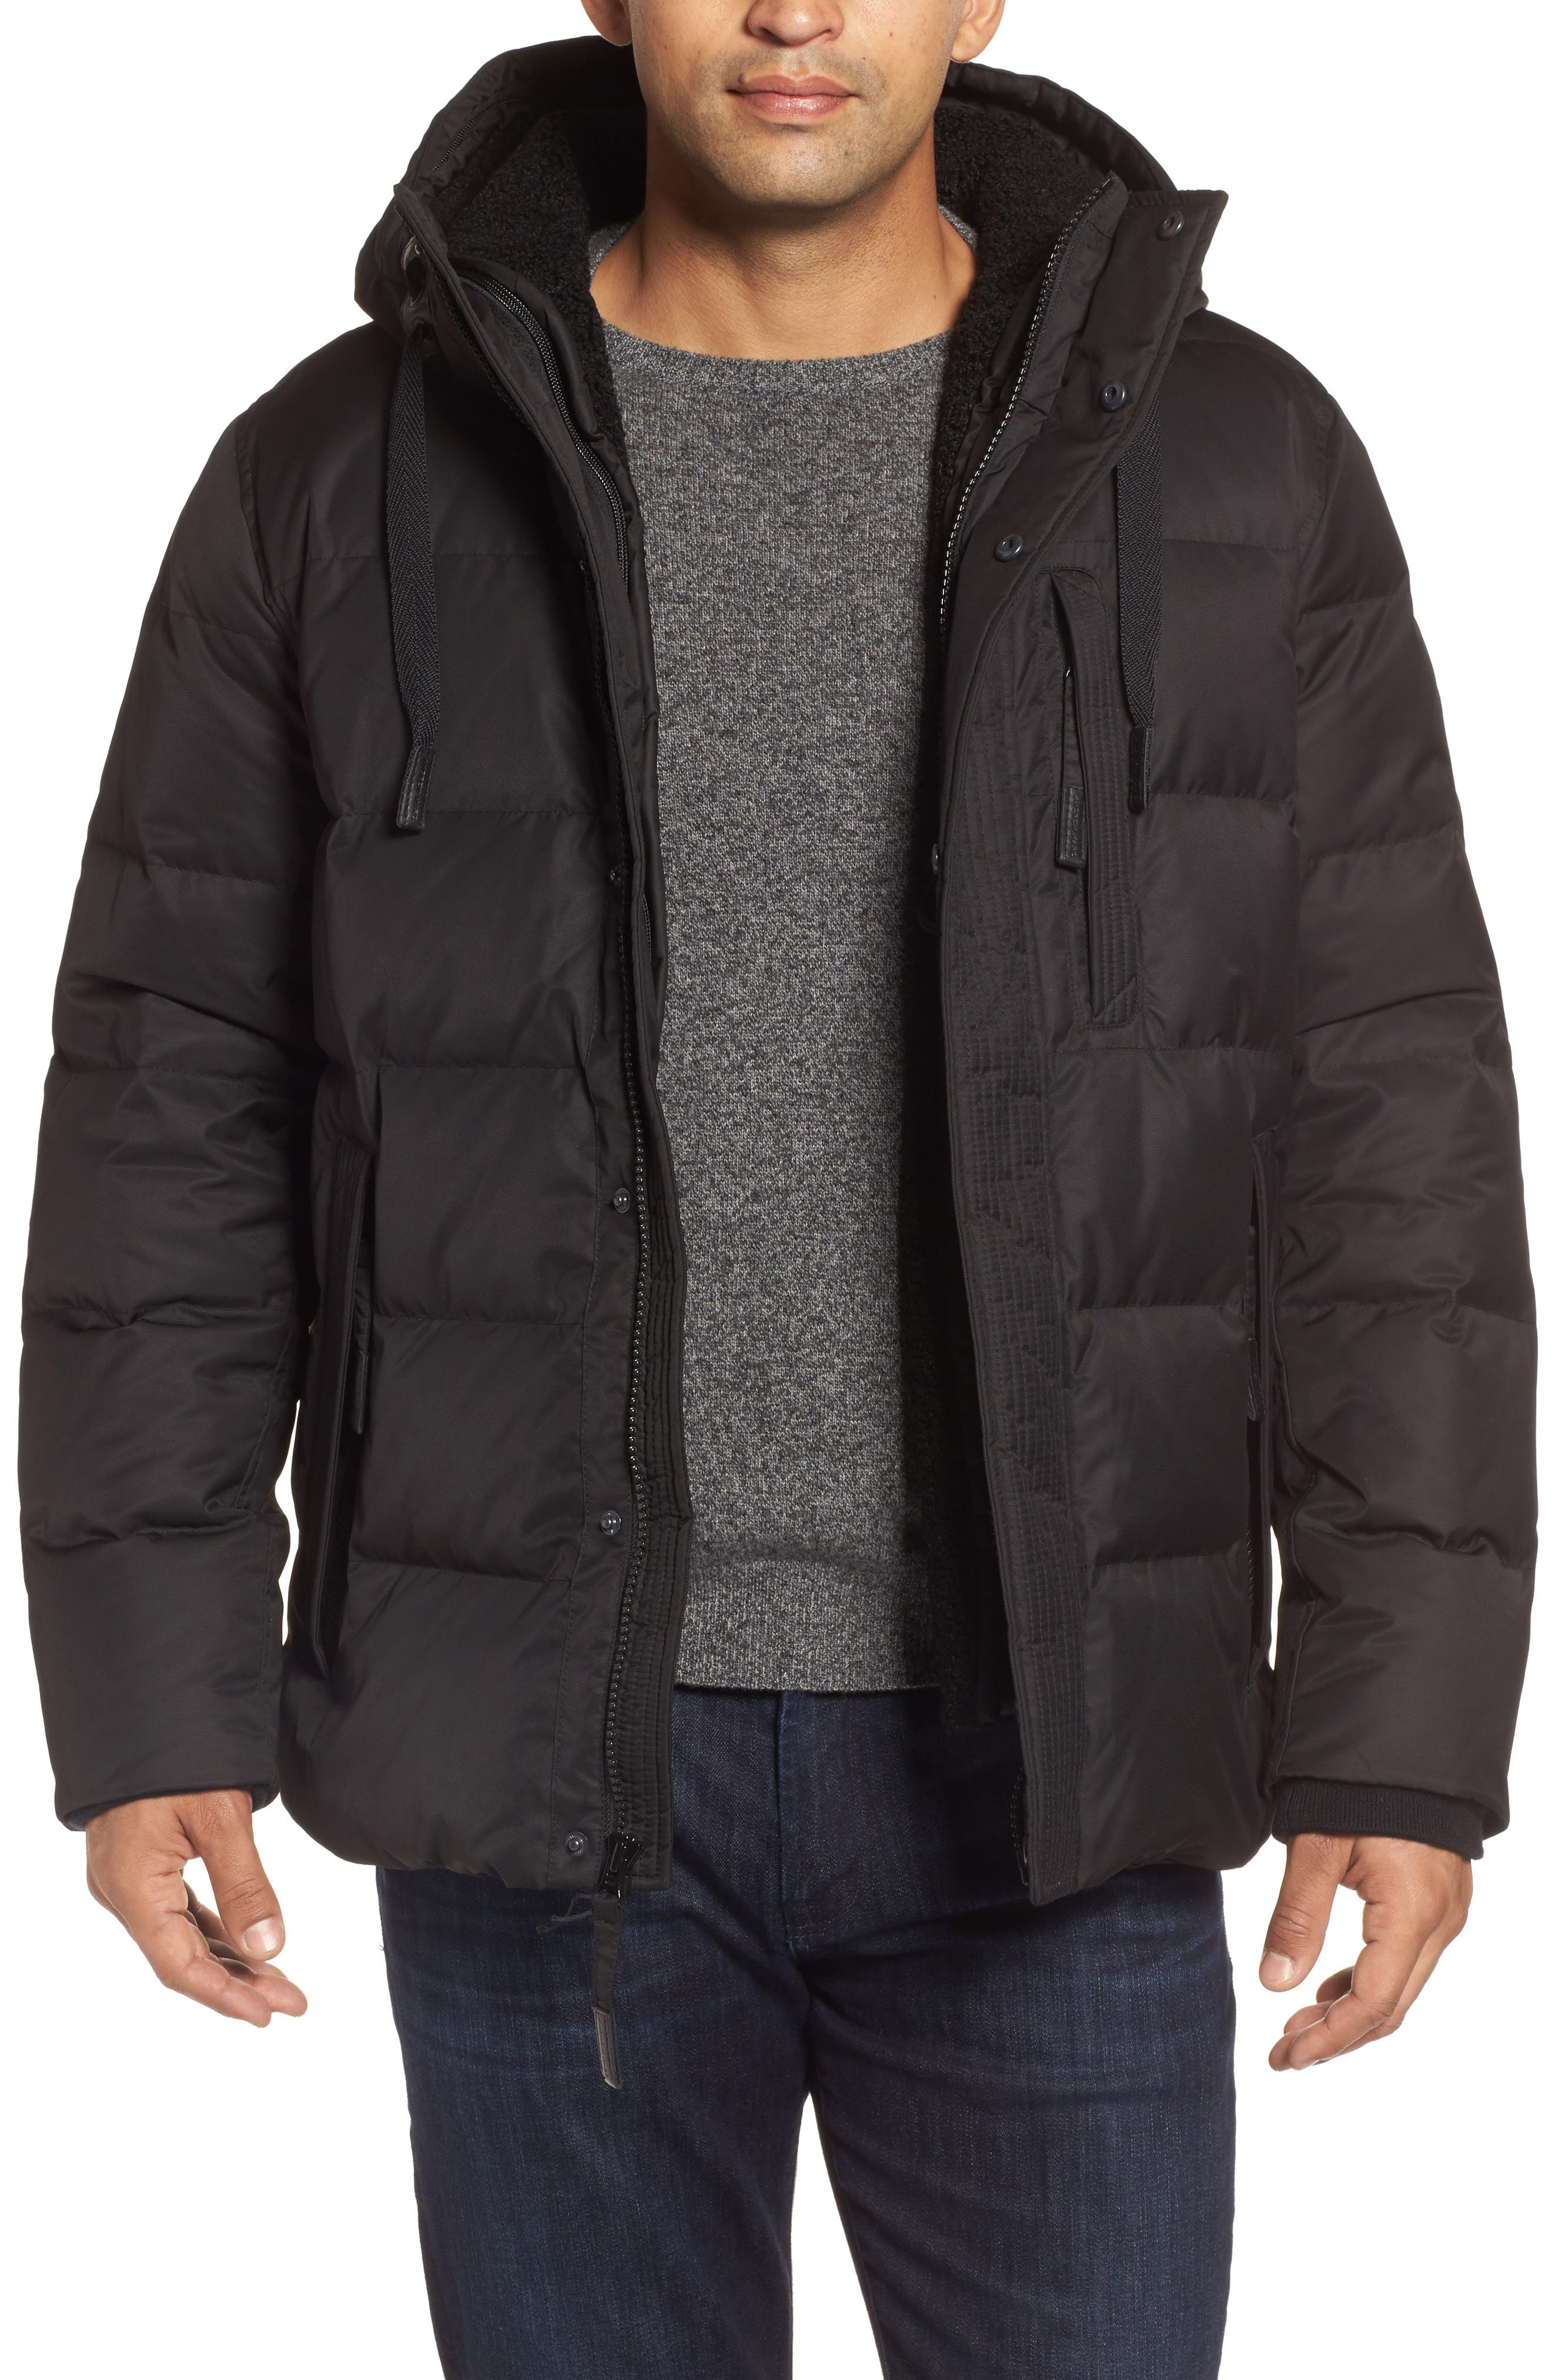 Groton Slim Down Jacket with Faux Shearling Lining,                         Main,                         color, Black